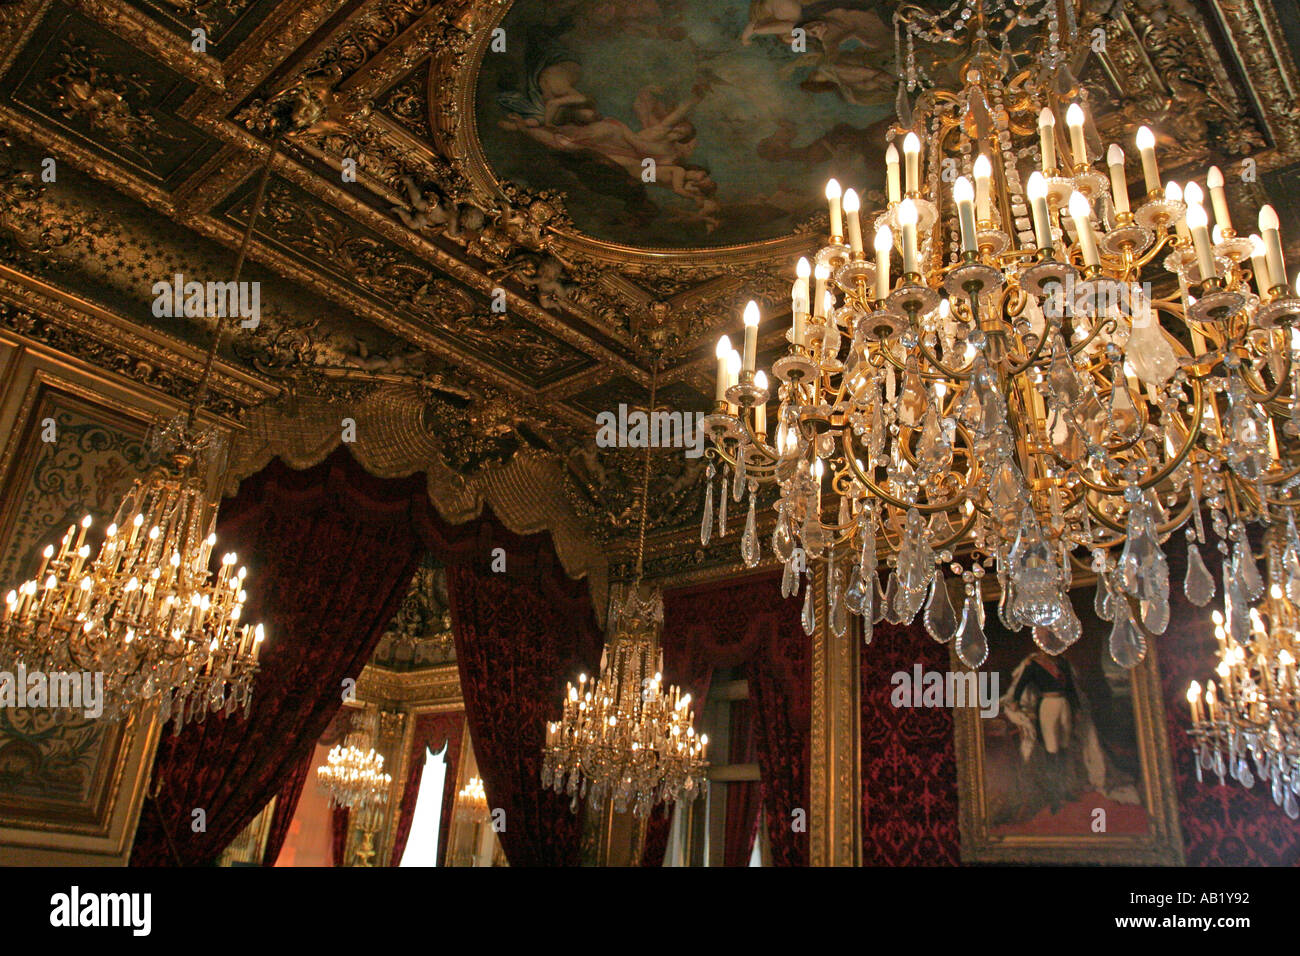 Chandeliers in napoleon apartment in the luovre museum paris france chandeliers in napoleon apartment in the luovre museum paris france mozeypictures Gallery